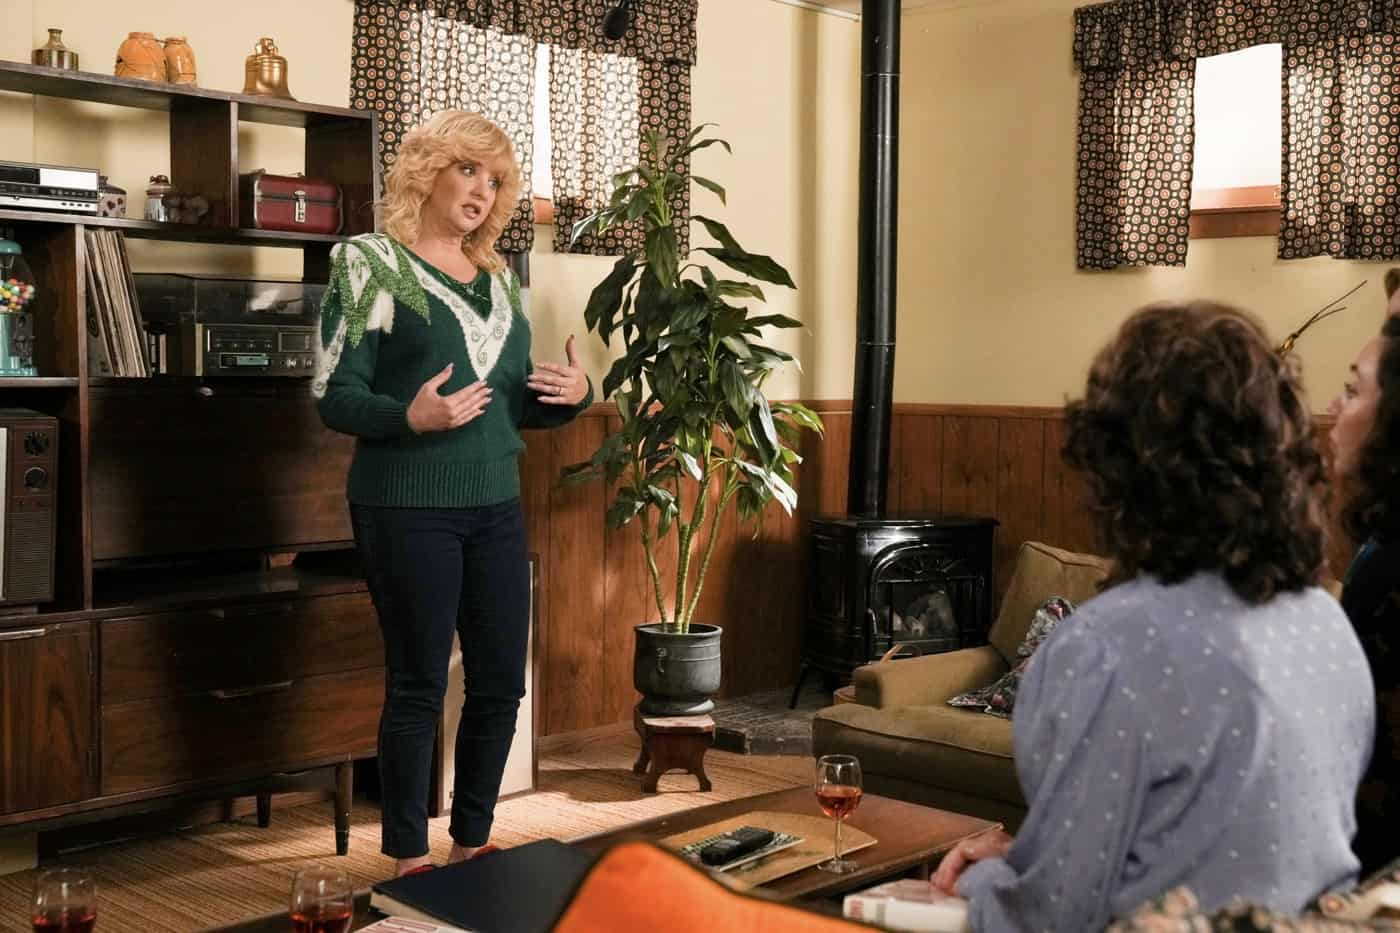 """THE GOLDBERGS Season 9 Episode 4 - """"The William Penn Years"""" – Never a sports enthusiast, Adam finds himself in a pickle with his peers when he's recruited to film his high school's highly awaited last football game of the year and fails to capture his team's winning touchdown. Meanwhile, Beverly discovers her neighbor Arnie Wolfy (Dan Lauria) is moving and she's determined to buy his spacious home and move the family in. Murray's long-standing and unresolved conflict with Arnie challenges Beverly's plans, but the family comes to appreciate home is where the heart is on a new episode of """"The Goldbergs,"""" airing WEDNESDAY, OCT. 13 (8:00-8:30 p.m. EDT), on ABC. (ABC/Scott Everett White) WENDI MCLENDON-COVEY"""